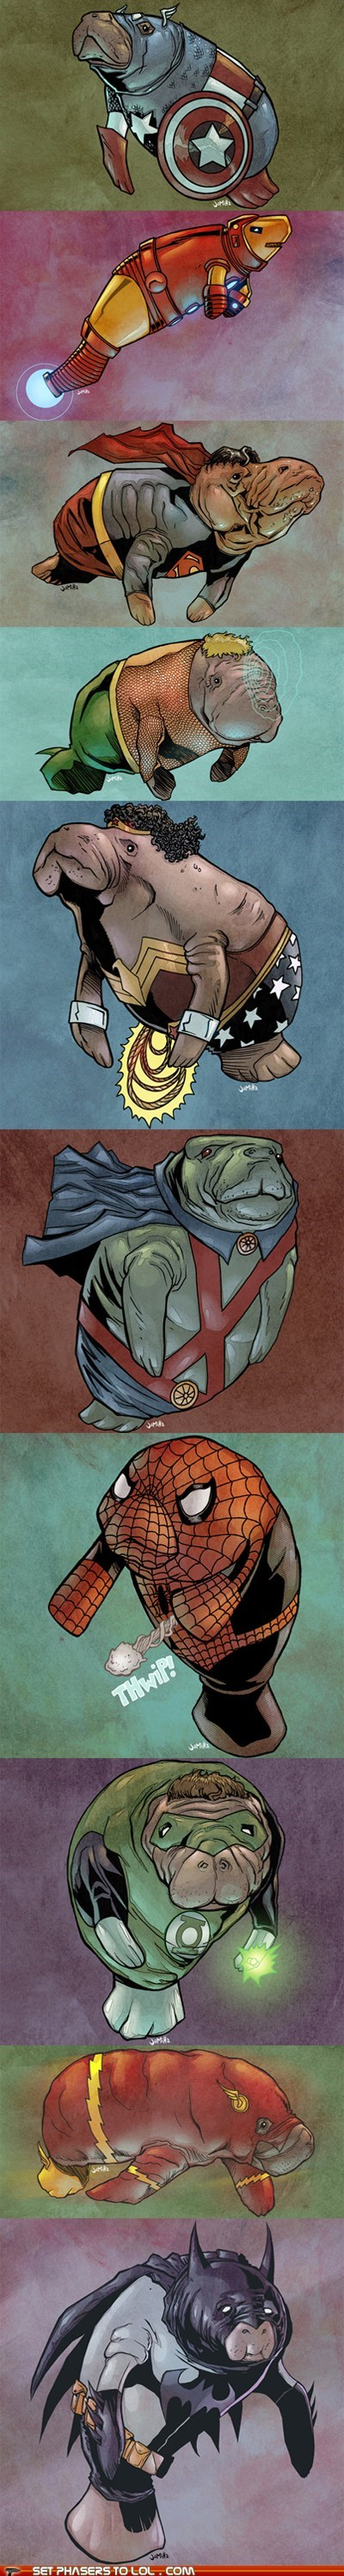 Set Phasers to LOL: Super Manatees